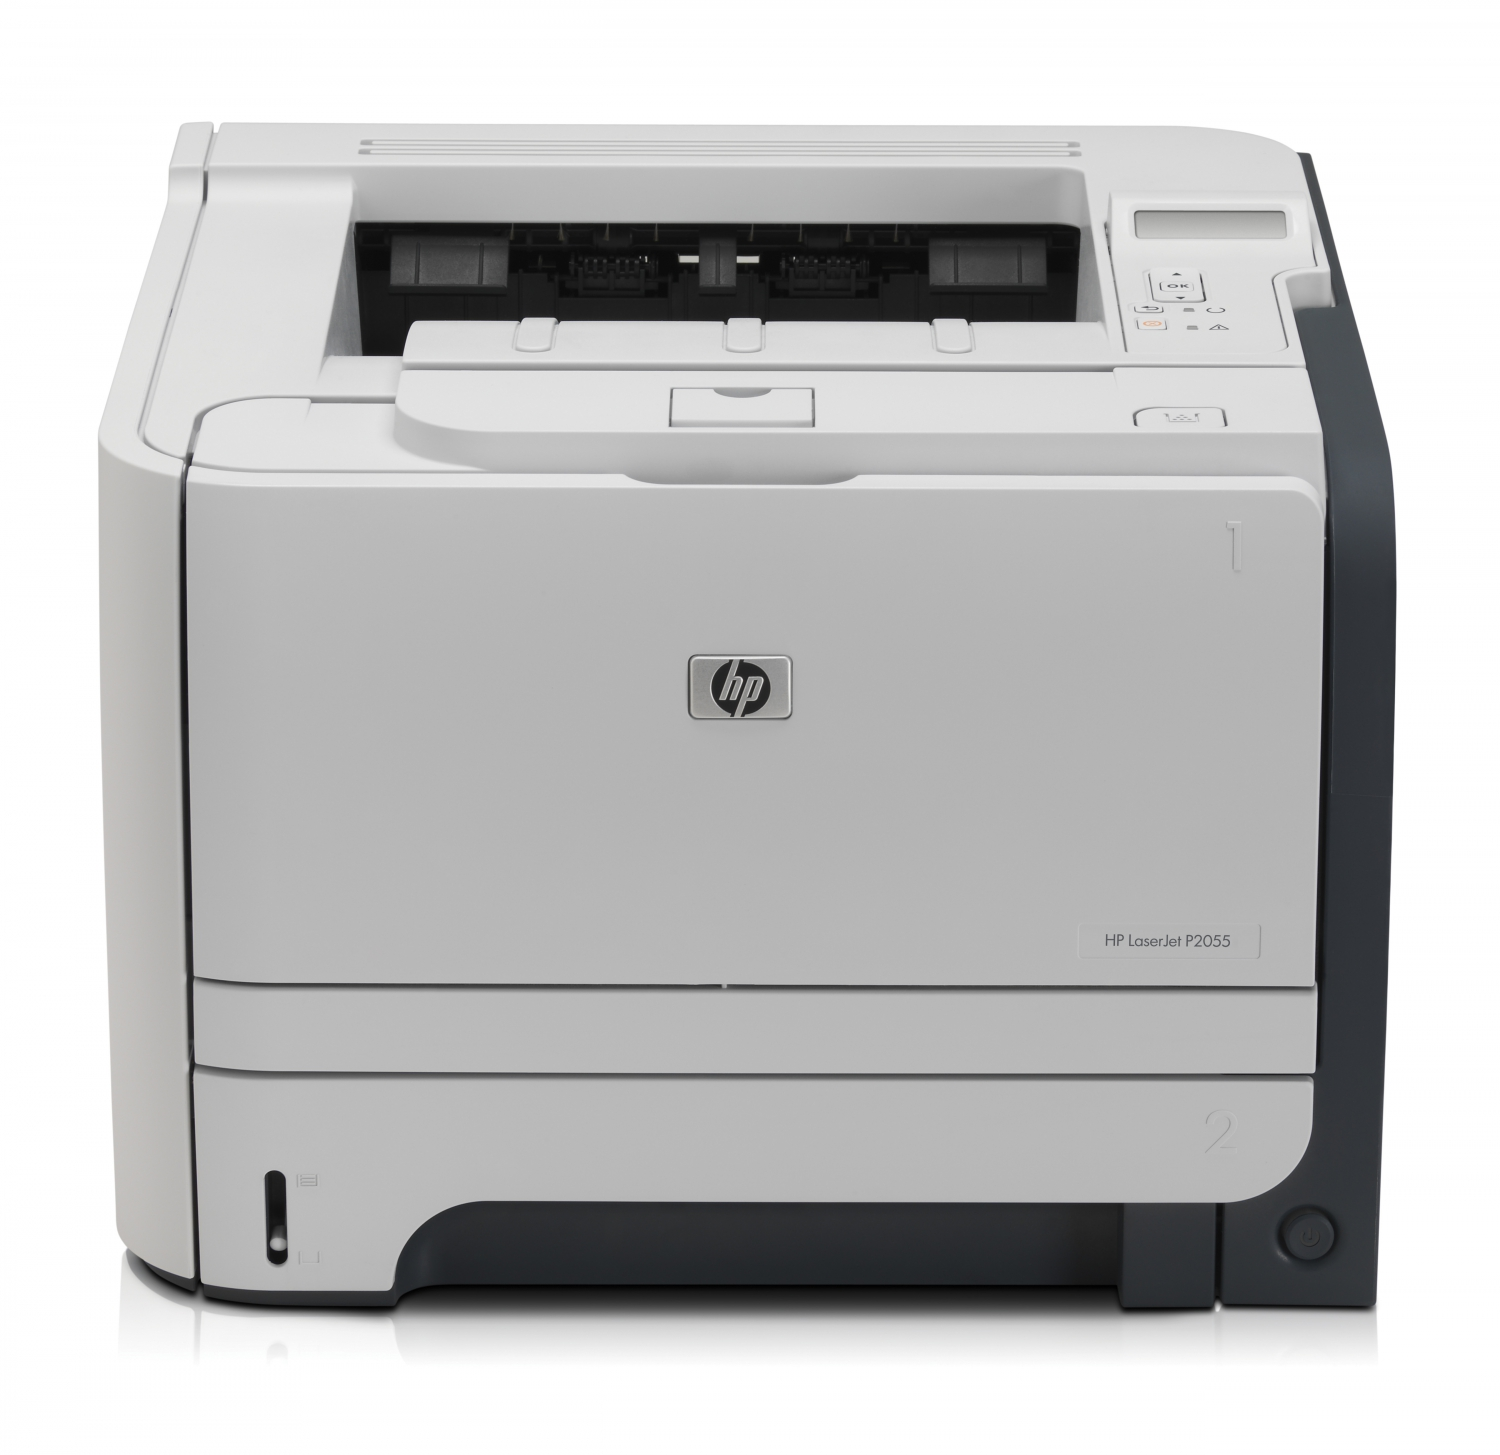 Принтер HP LaserJet P2055 Printer